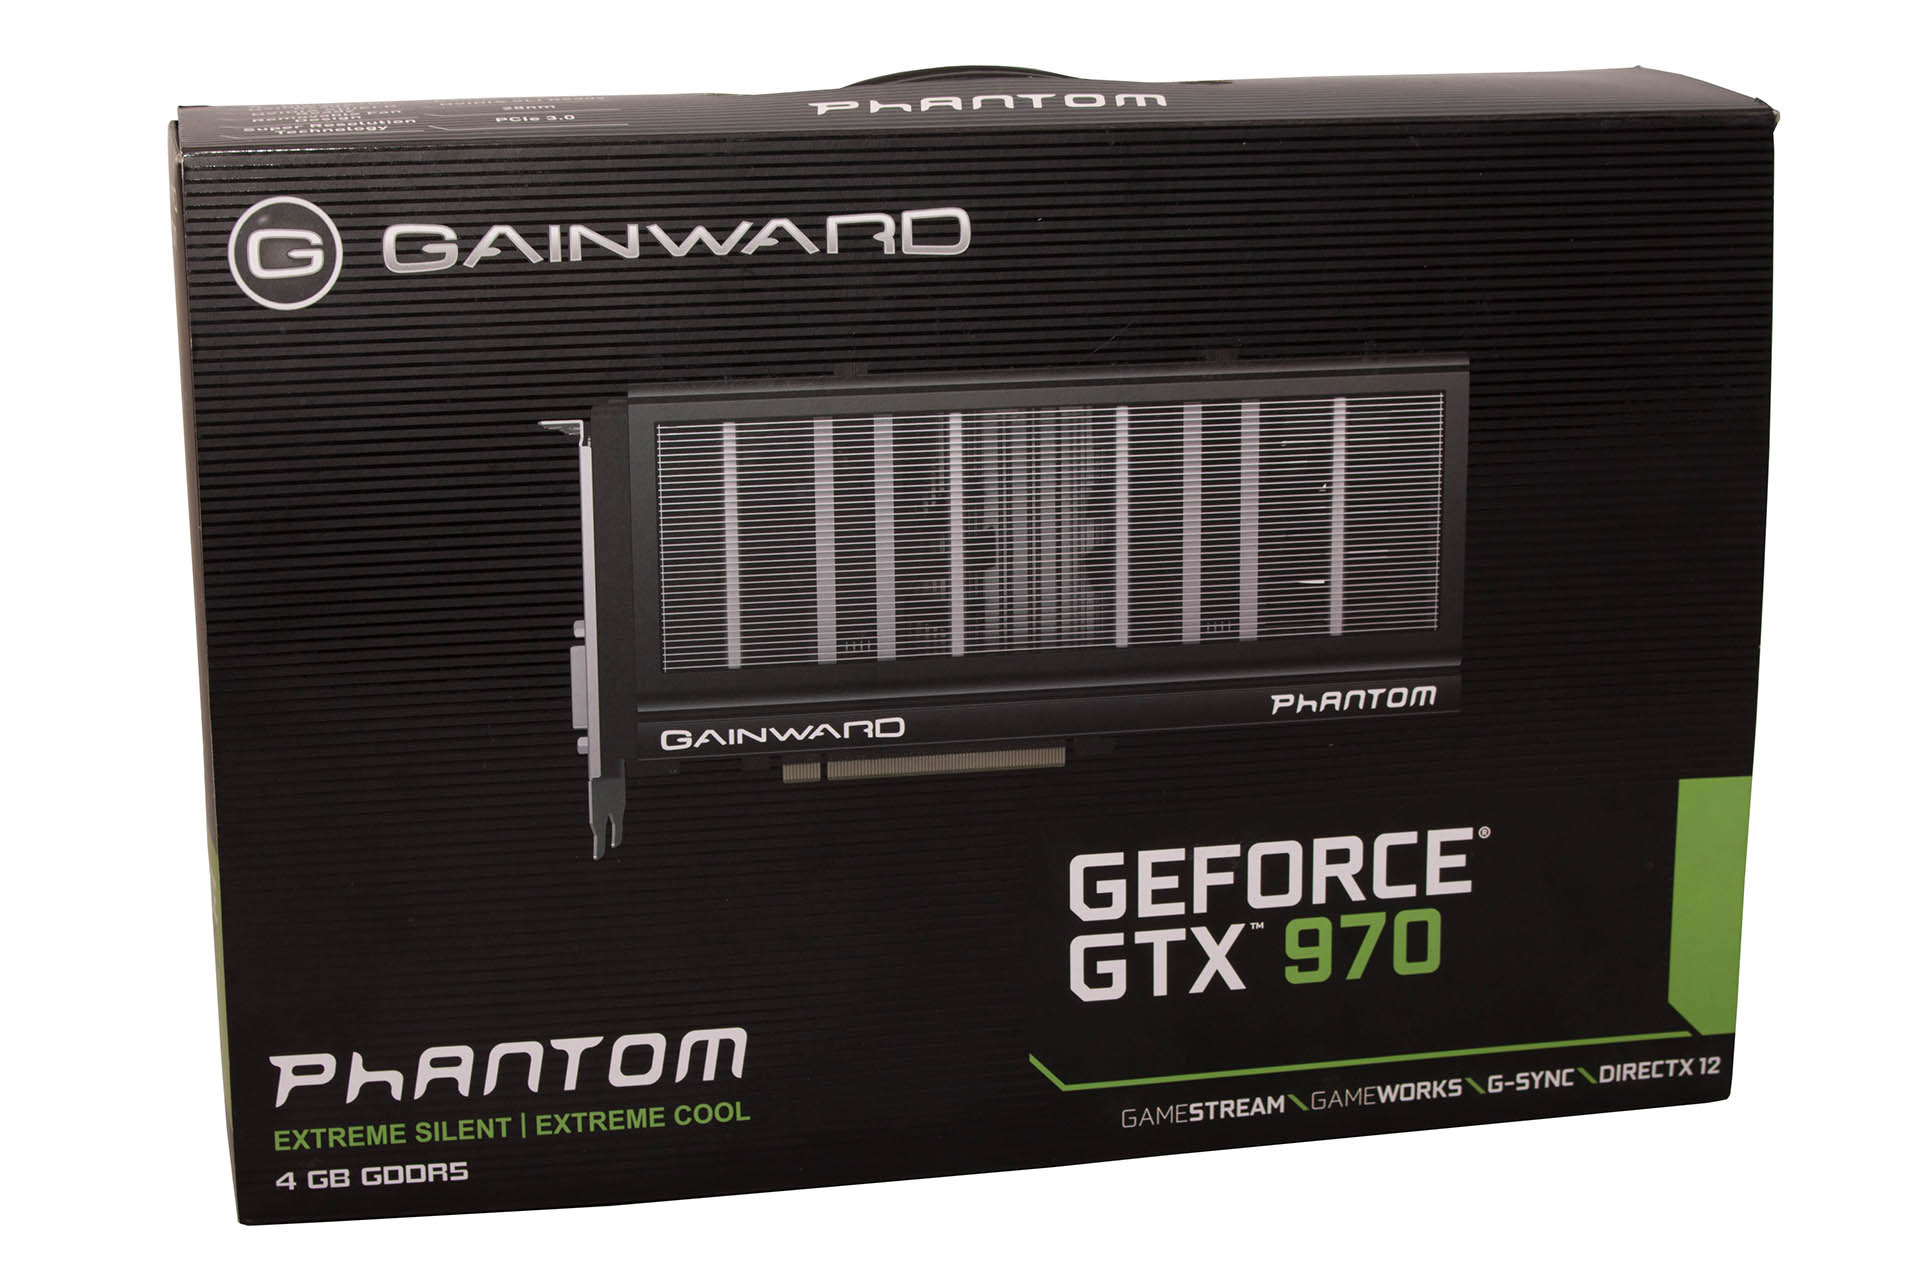 Gainward GTX970 Phantom test